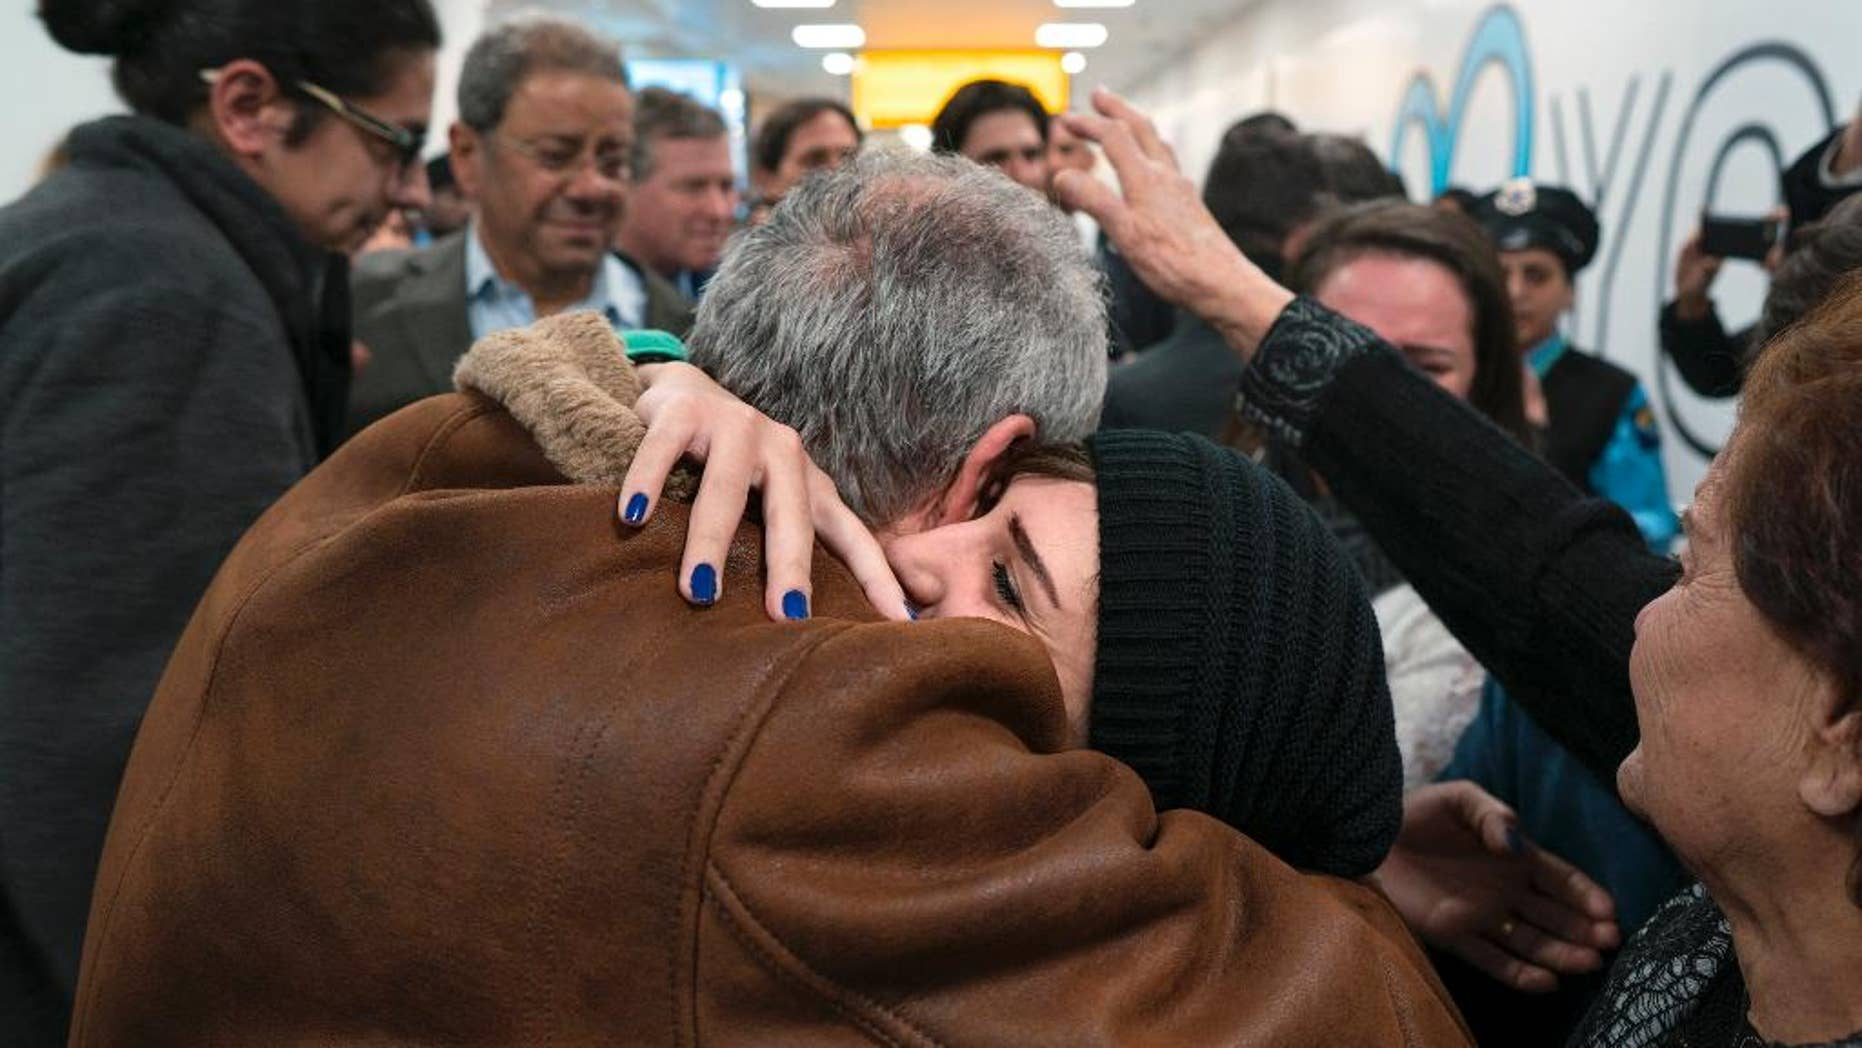 """FILE - In a Monday, Feb. 6, 2017 file photo, family members who have just arrived from Syria embrace and are greeted by family who live in the United States upon their arrival at John F. Kennedy International Airport in New York. Organizers in cities across the U.S. are telling immigrants to miss class, miss work and not shop on Thursday, Feb. 16, 2017,  as a way to show the country how important they are to America's economy and way of life. """"A Day Without Immigrants"""" actions are planned in cities including Philadelphia, Washington, Boston and Austin, Texas. (AP Photo/Craig Ruttle)"""